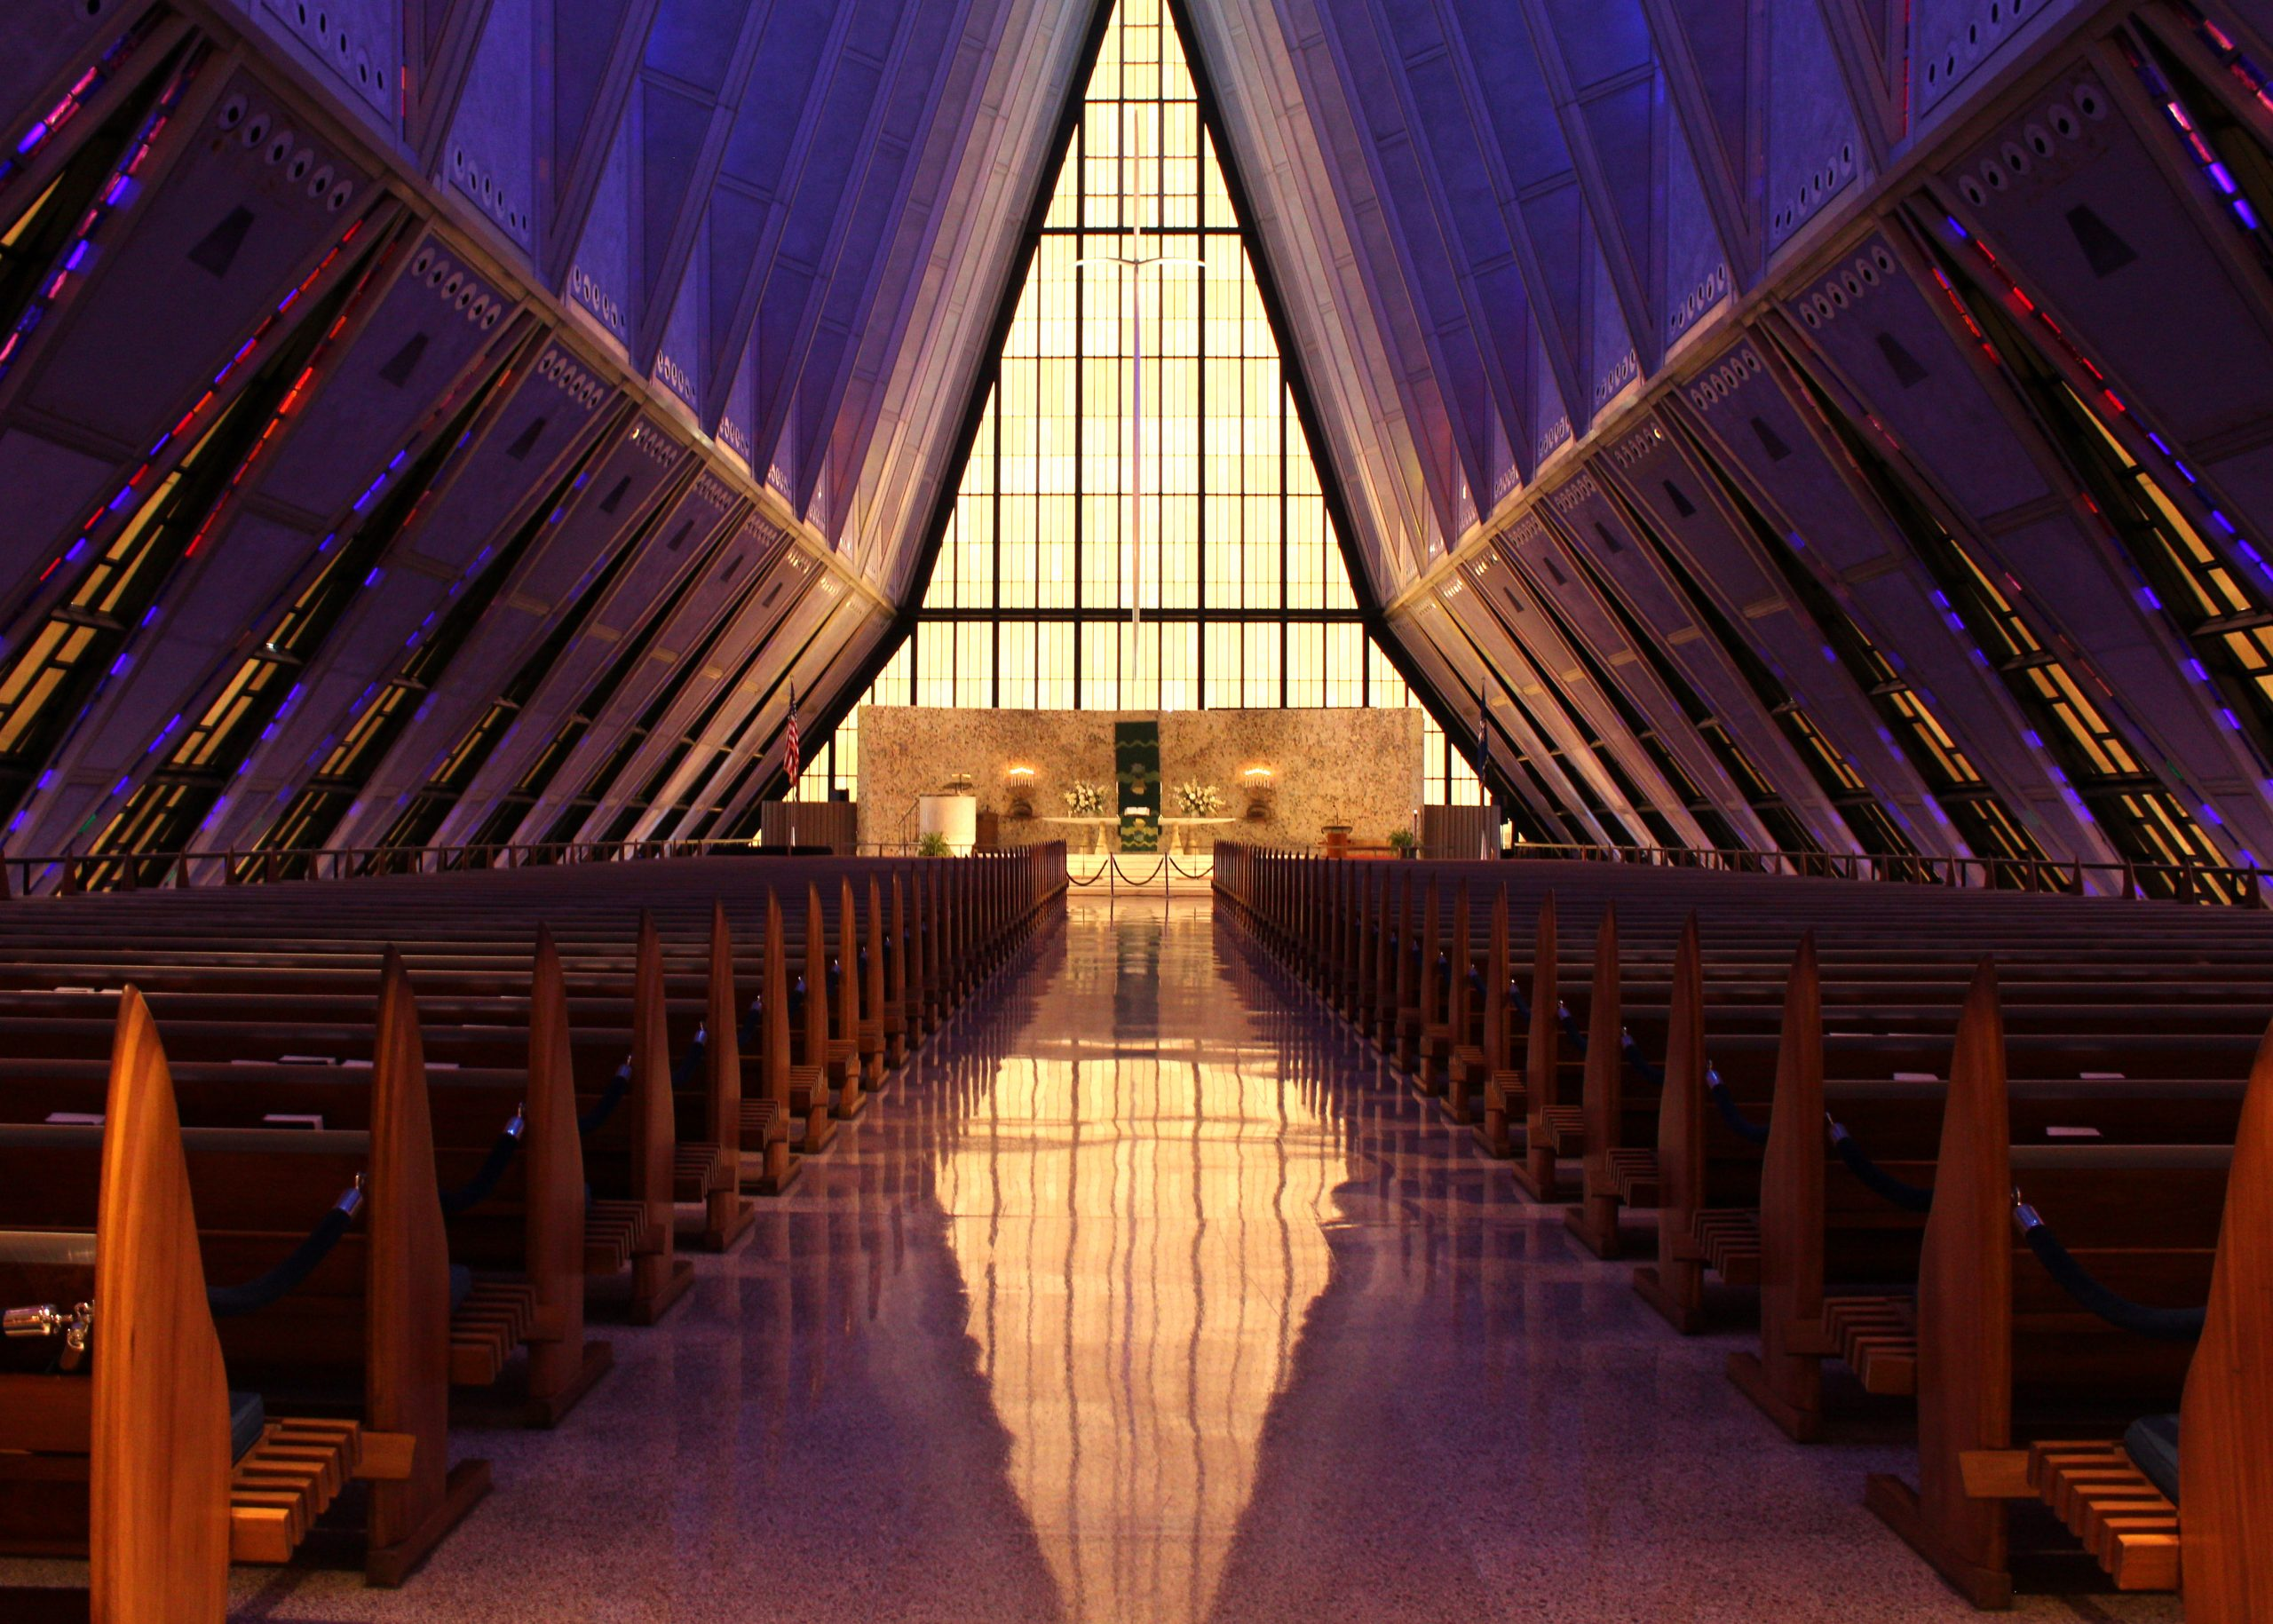 The center aisle of the Cadet Chapel at the United States Air Force Academy.